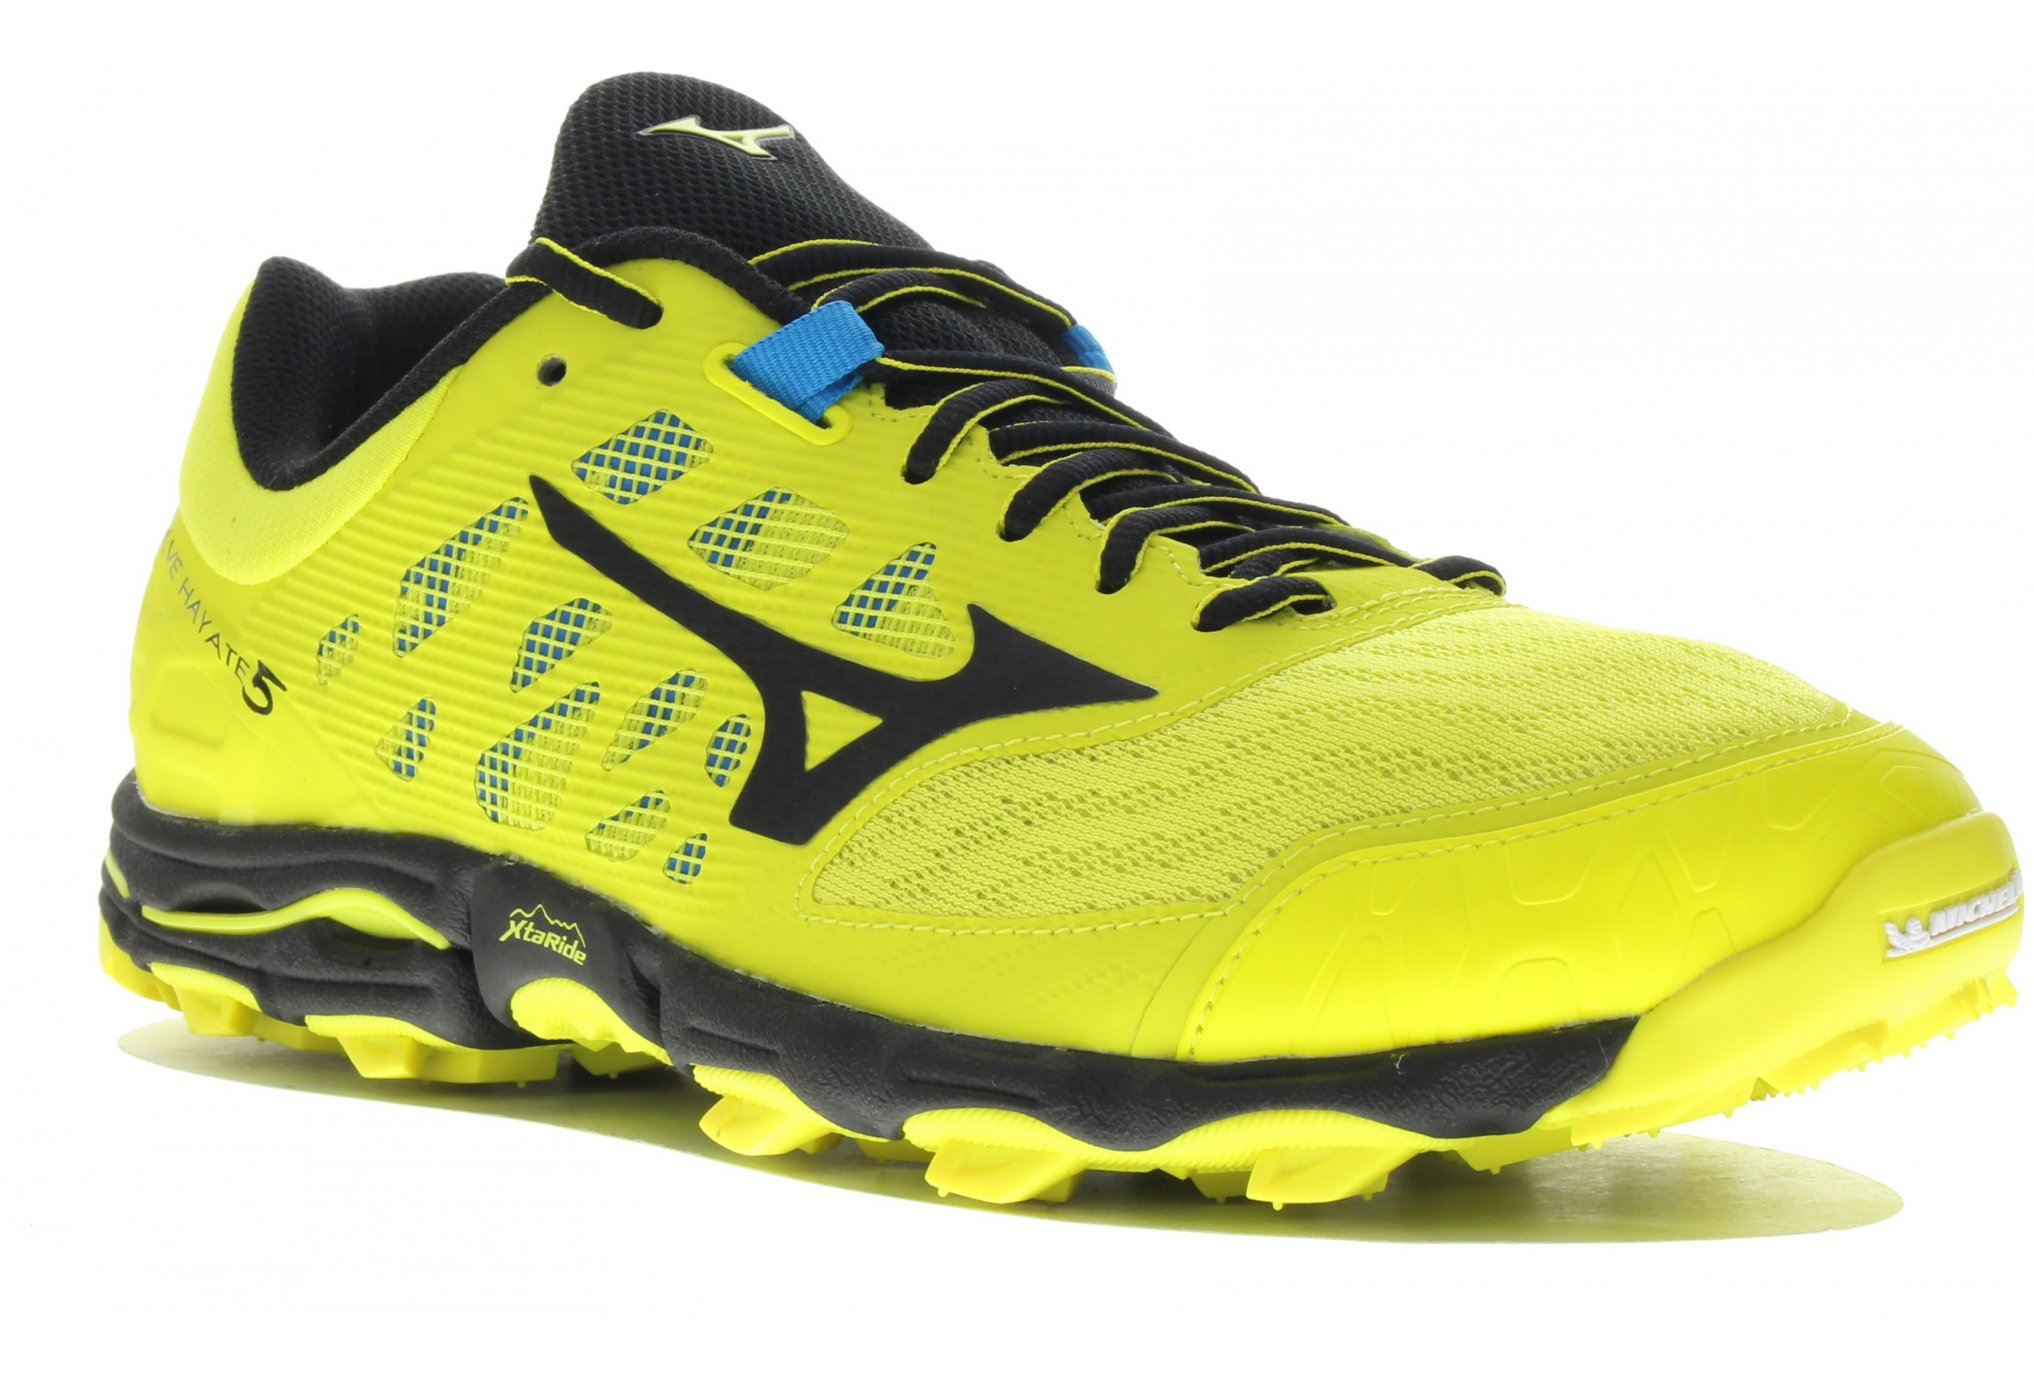 Mizuno Wave Catalyst 2Chaussures De Ru OPXZiukT